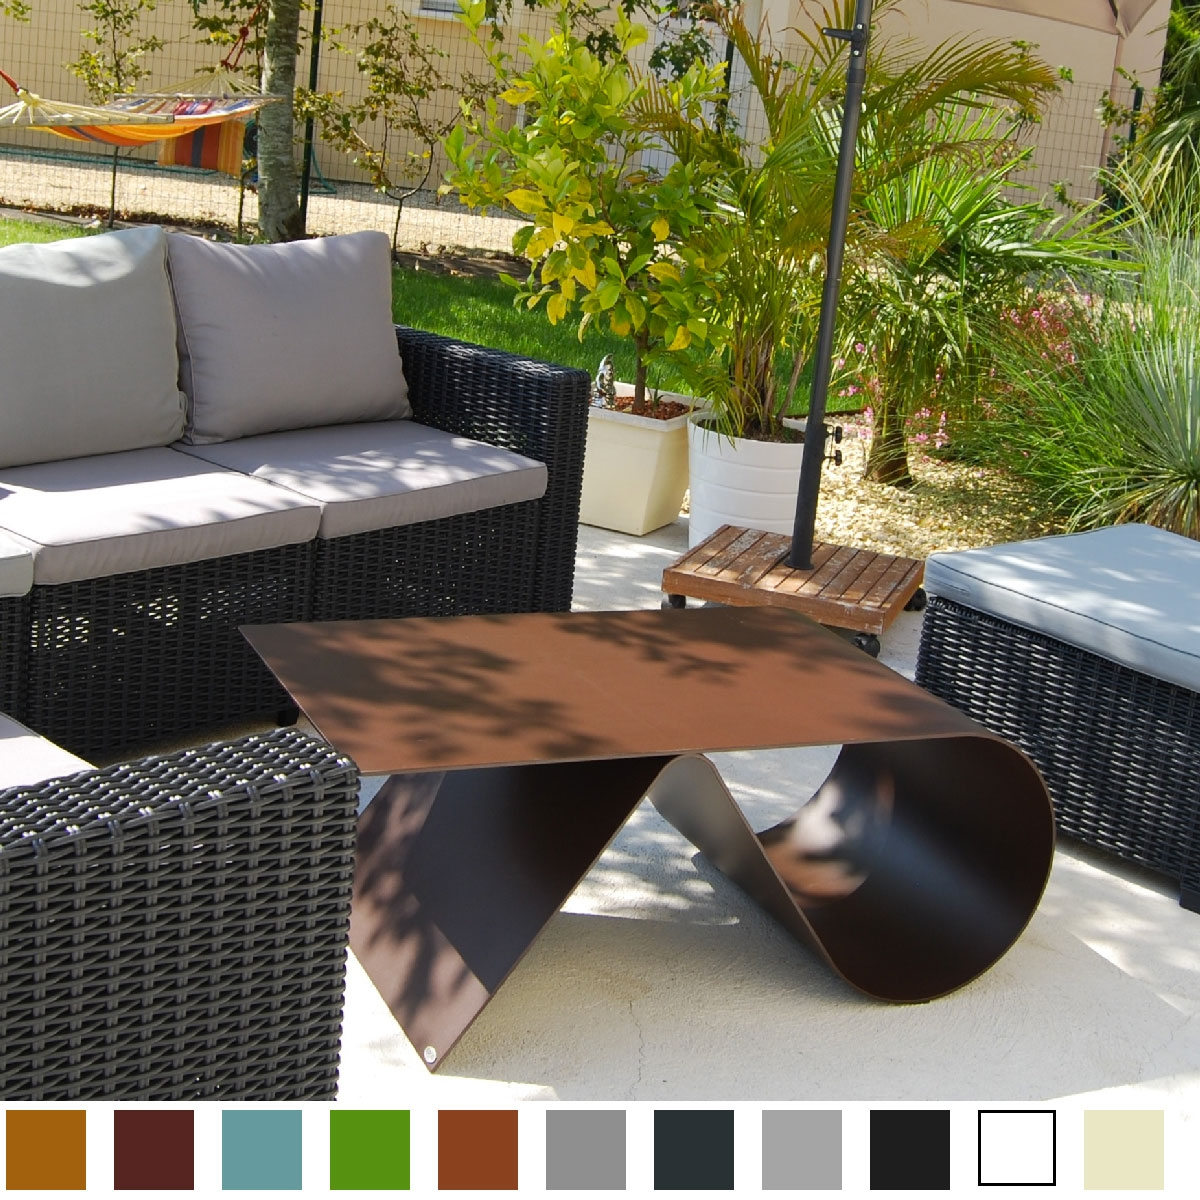 Table de jardin de luxe - Table de jardin design - Inspiration Luxe